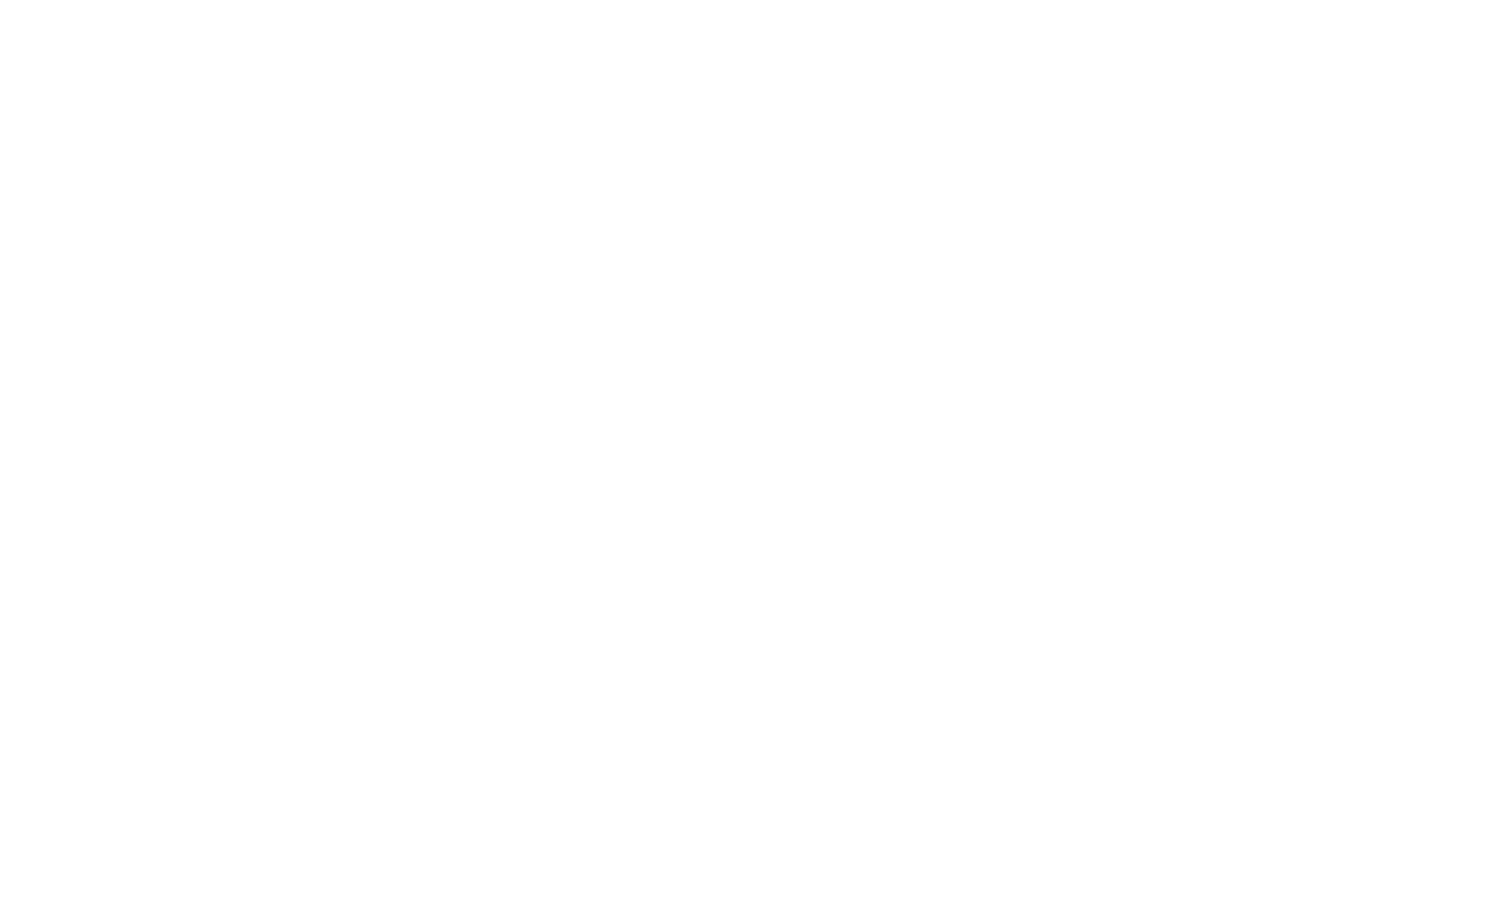 The International Future Foundation